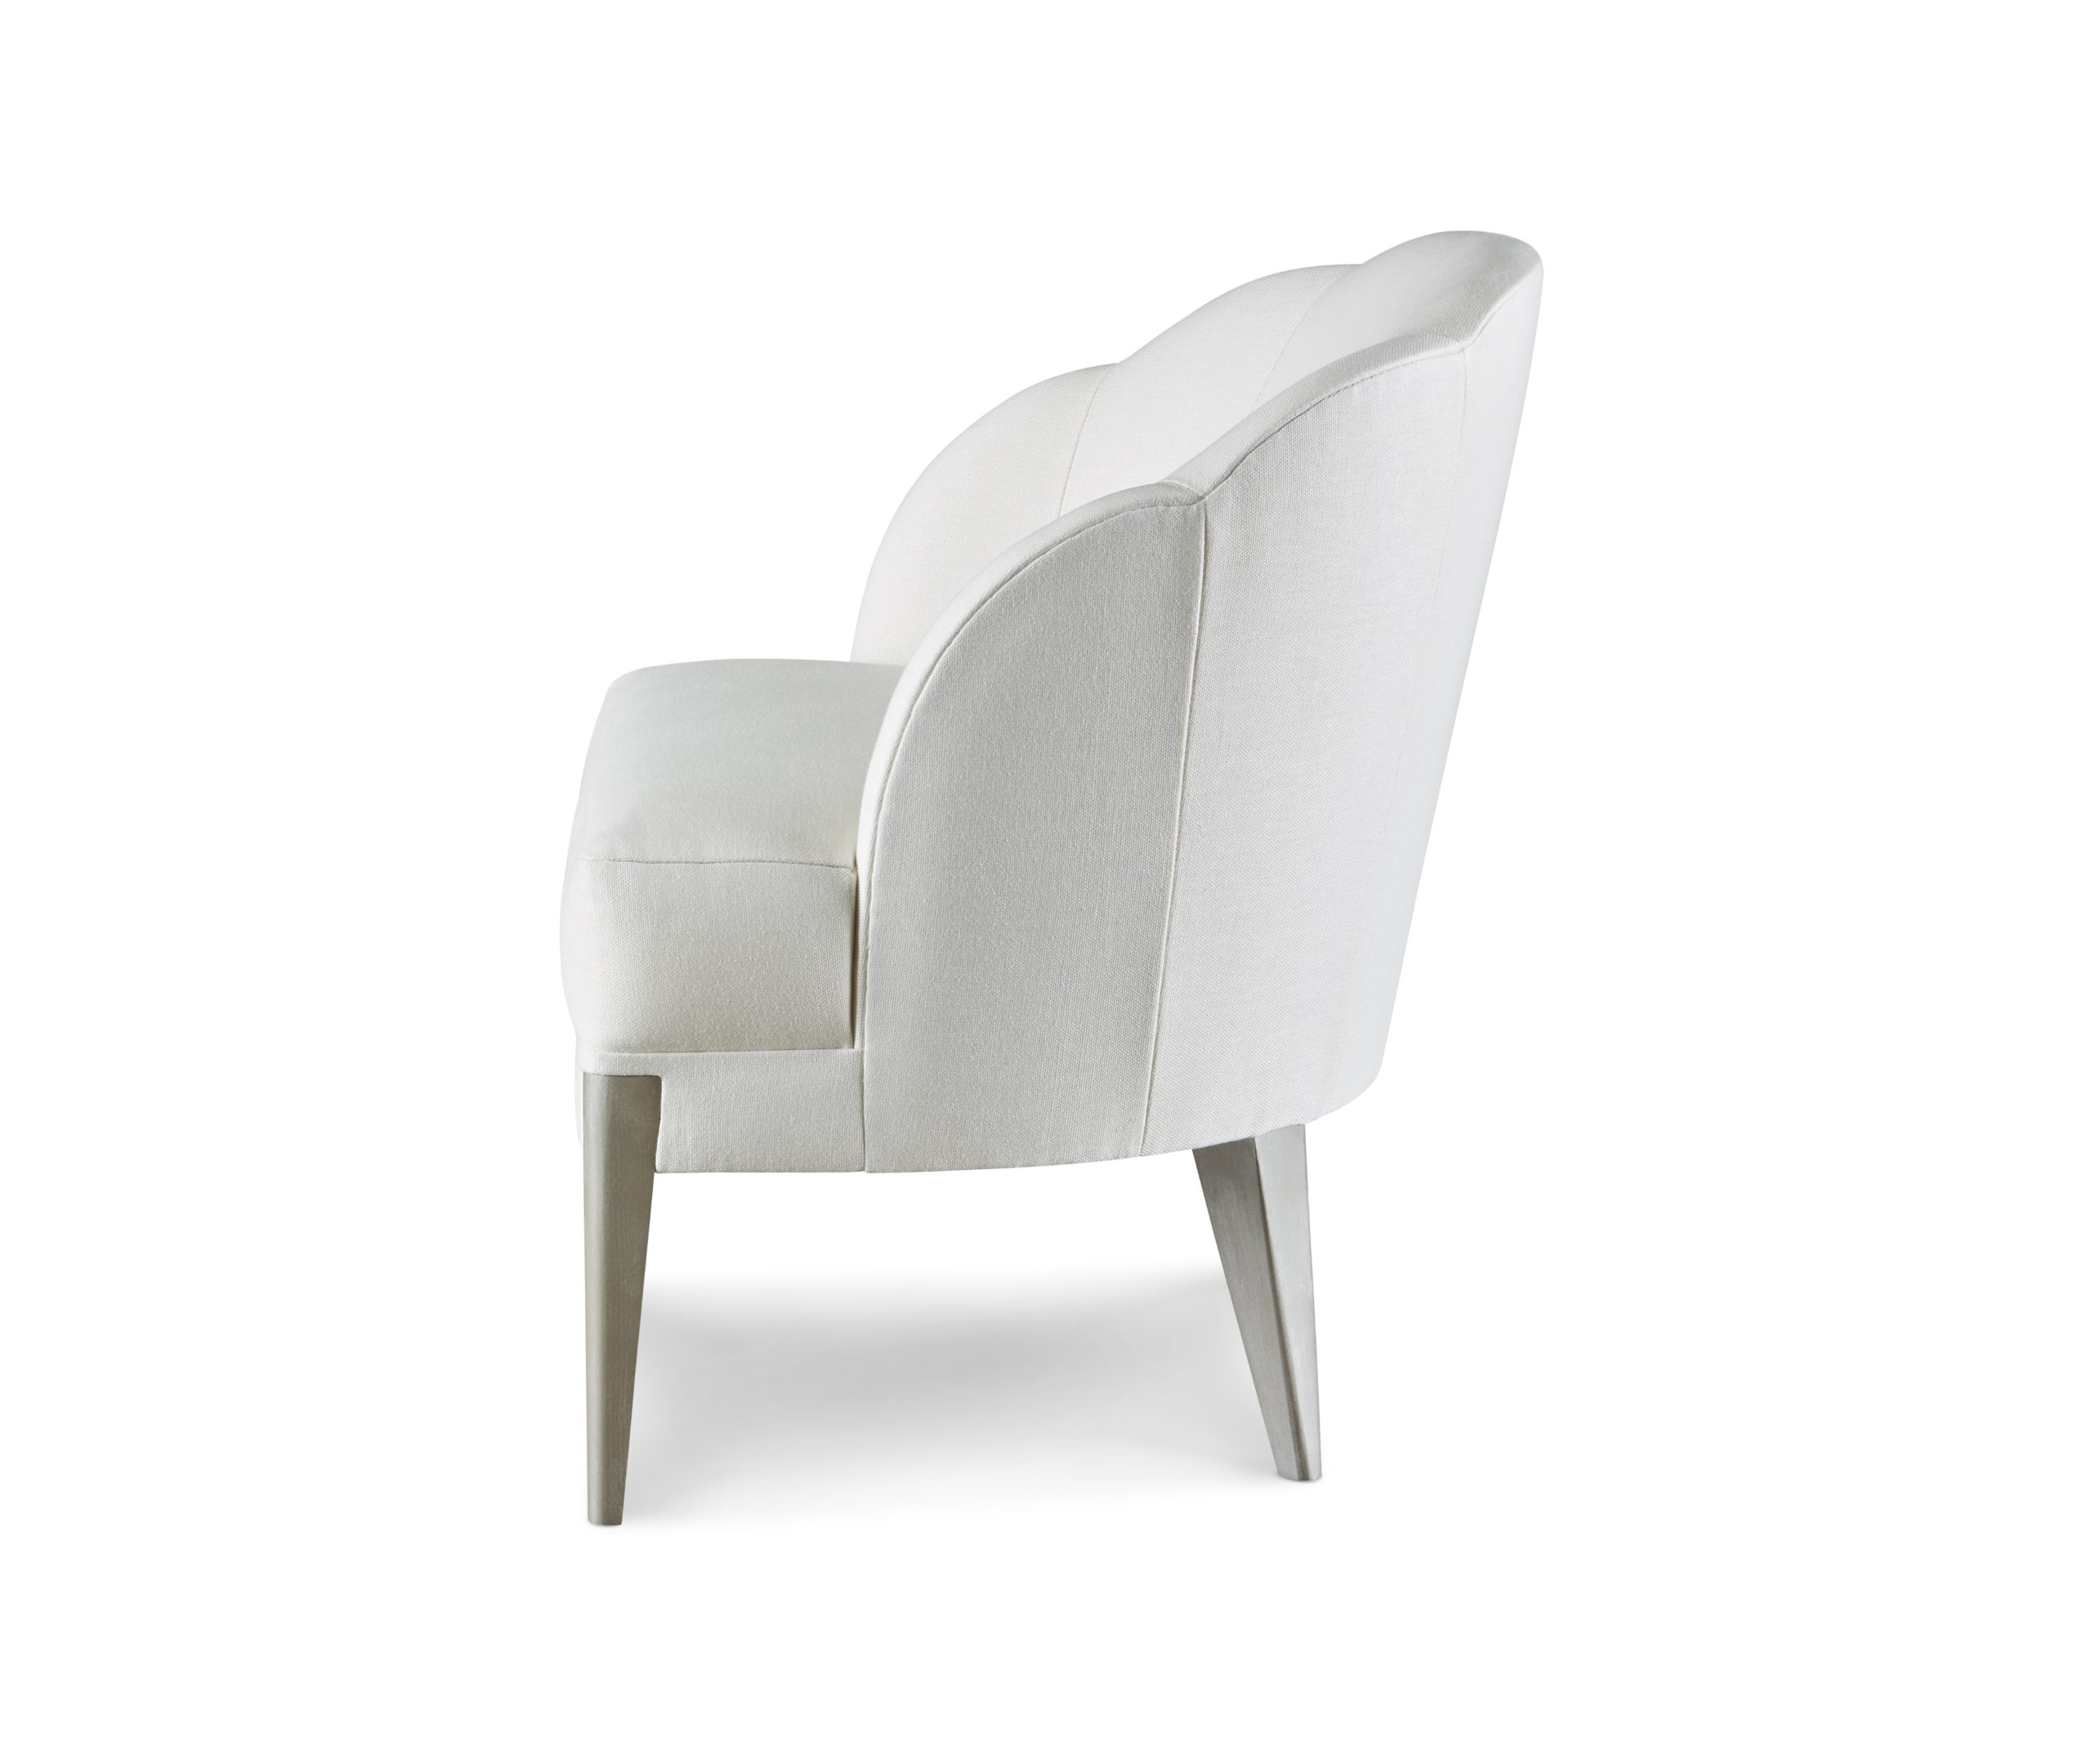 Baker_products_WNWN_sophie_chair_BAU3306c_SIDE-2-scaled-1